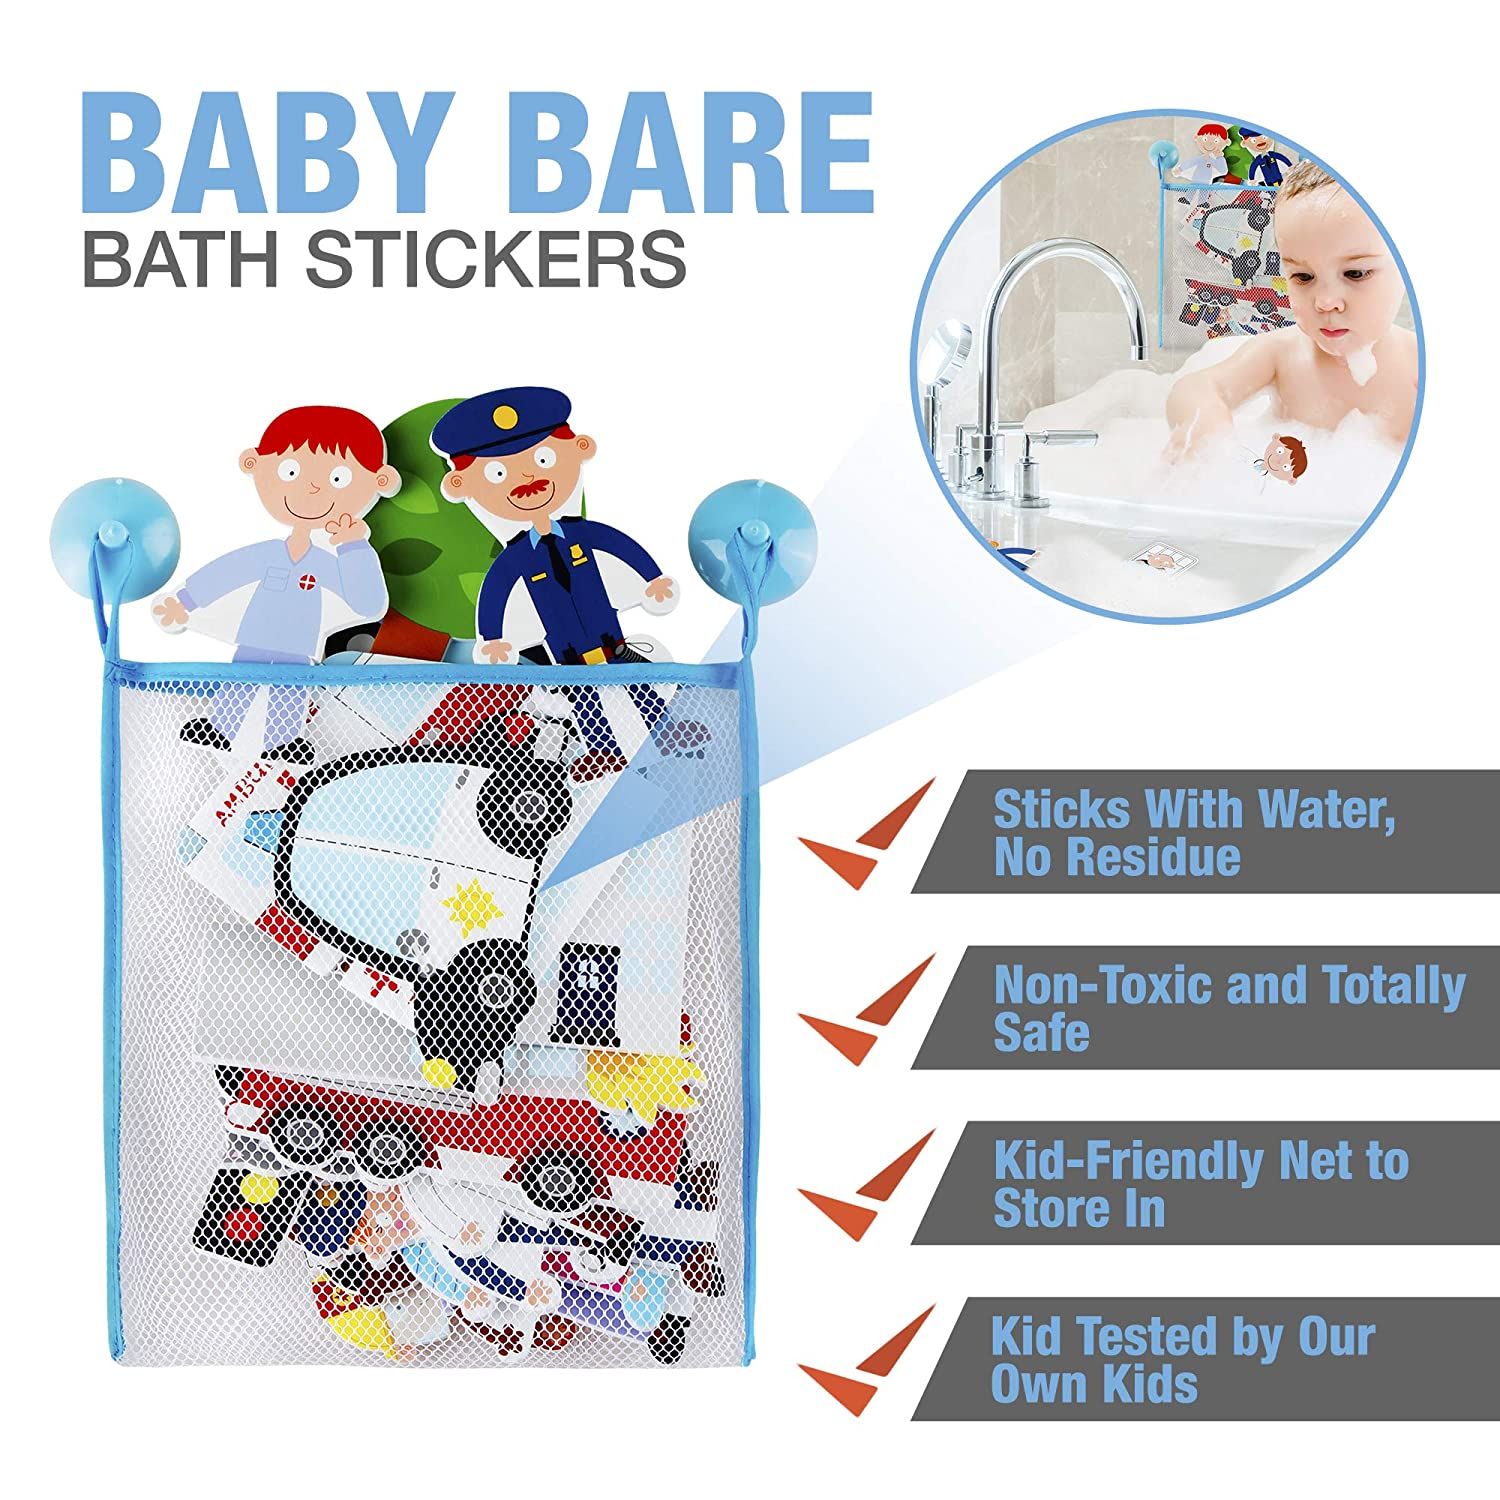 Doctors and Firefighters Non Toxic and Safe Foam Bath Toys for Boys and Girls Ages 3 Years Includes Storage Bag Rescue Friend Shapes That Stick with Water to Tub and Tile Features Police